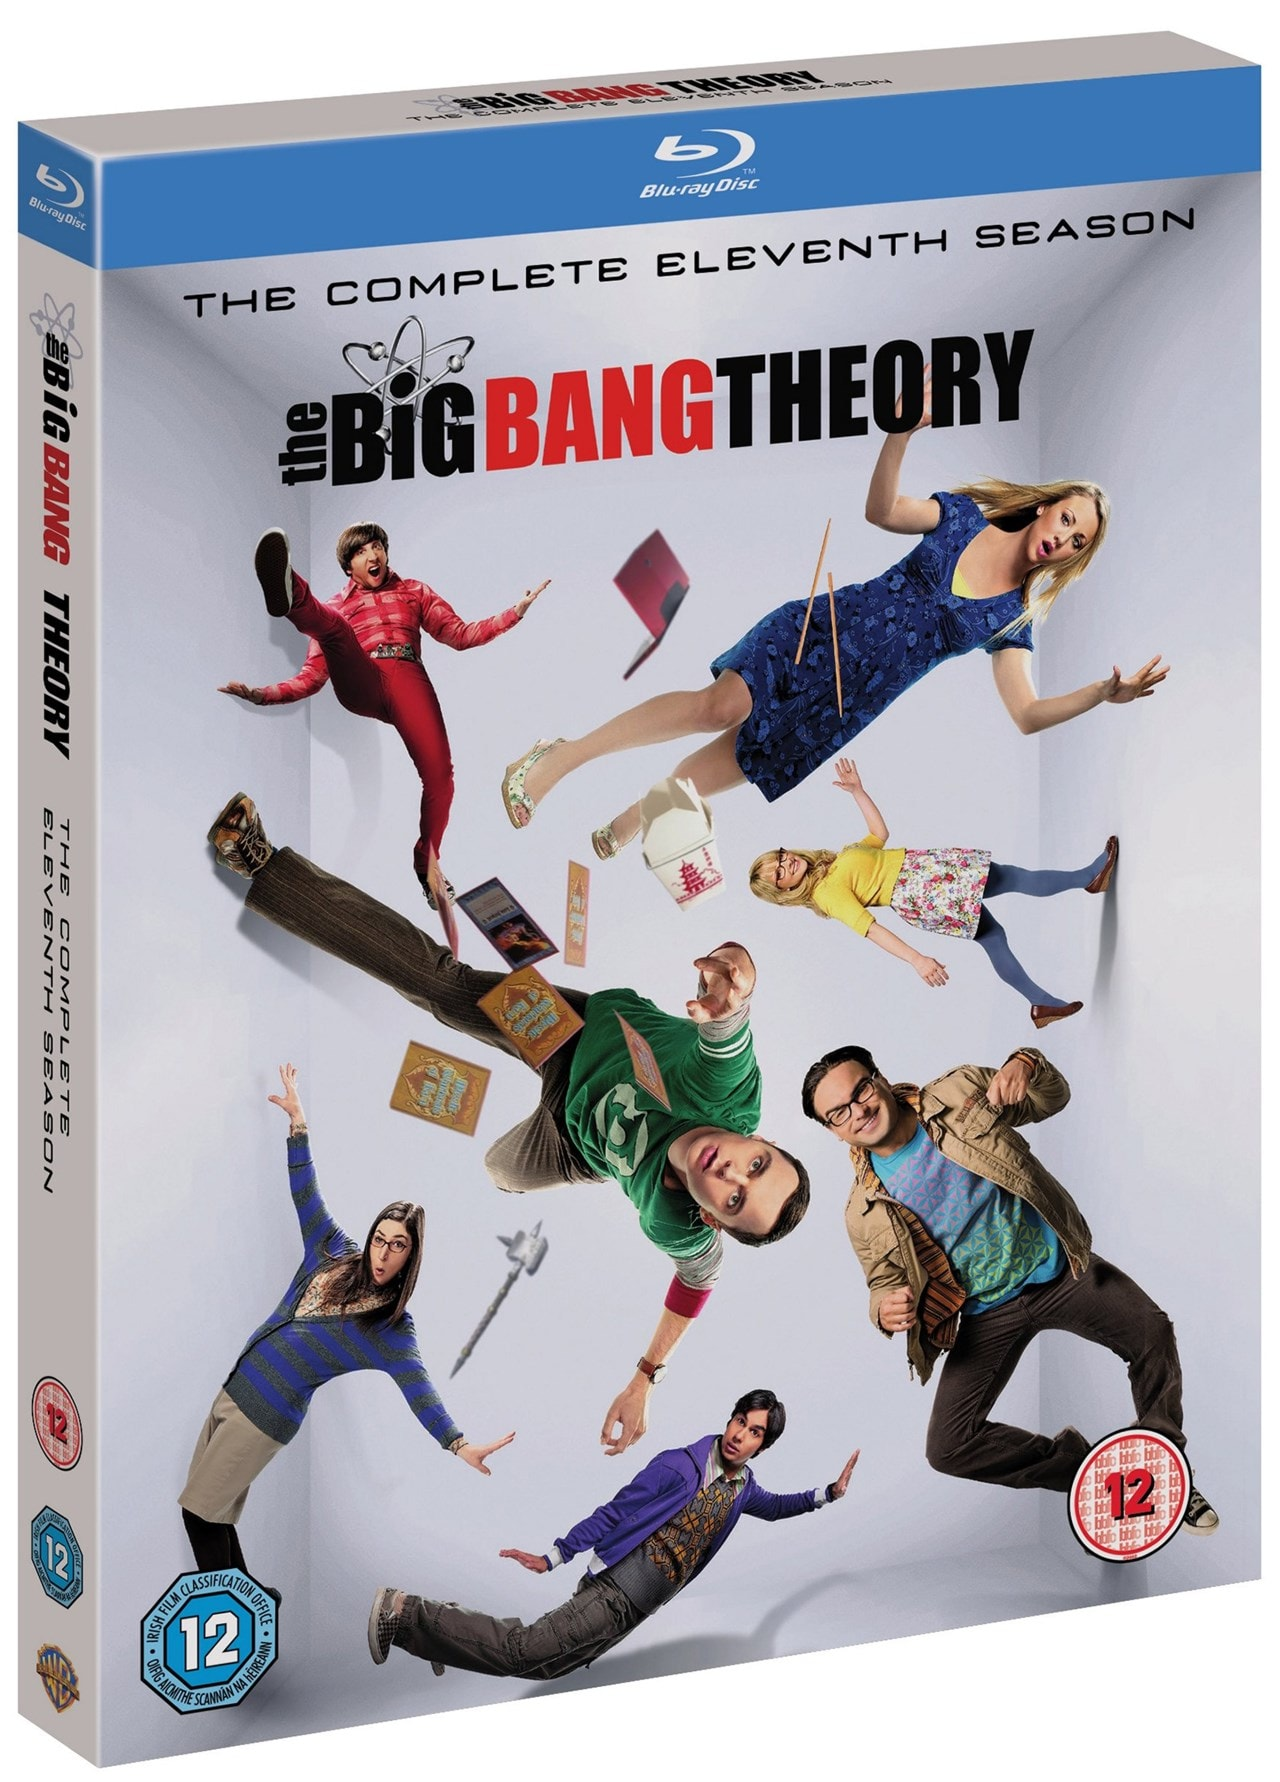 The Big Bang Theory: The Complete Eleventh Season - 2